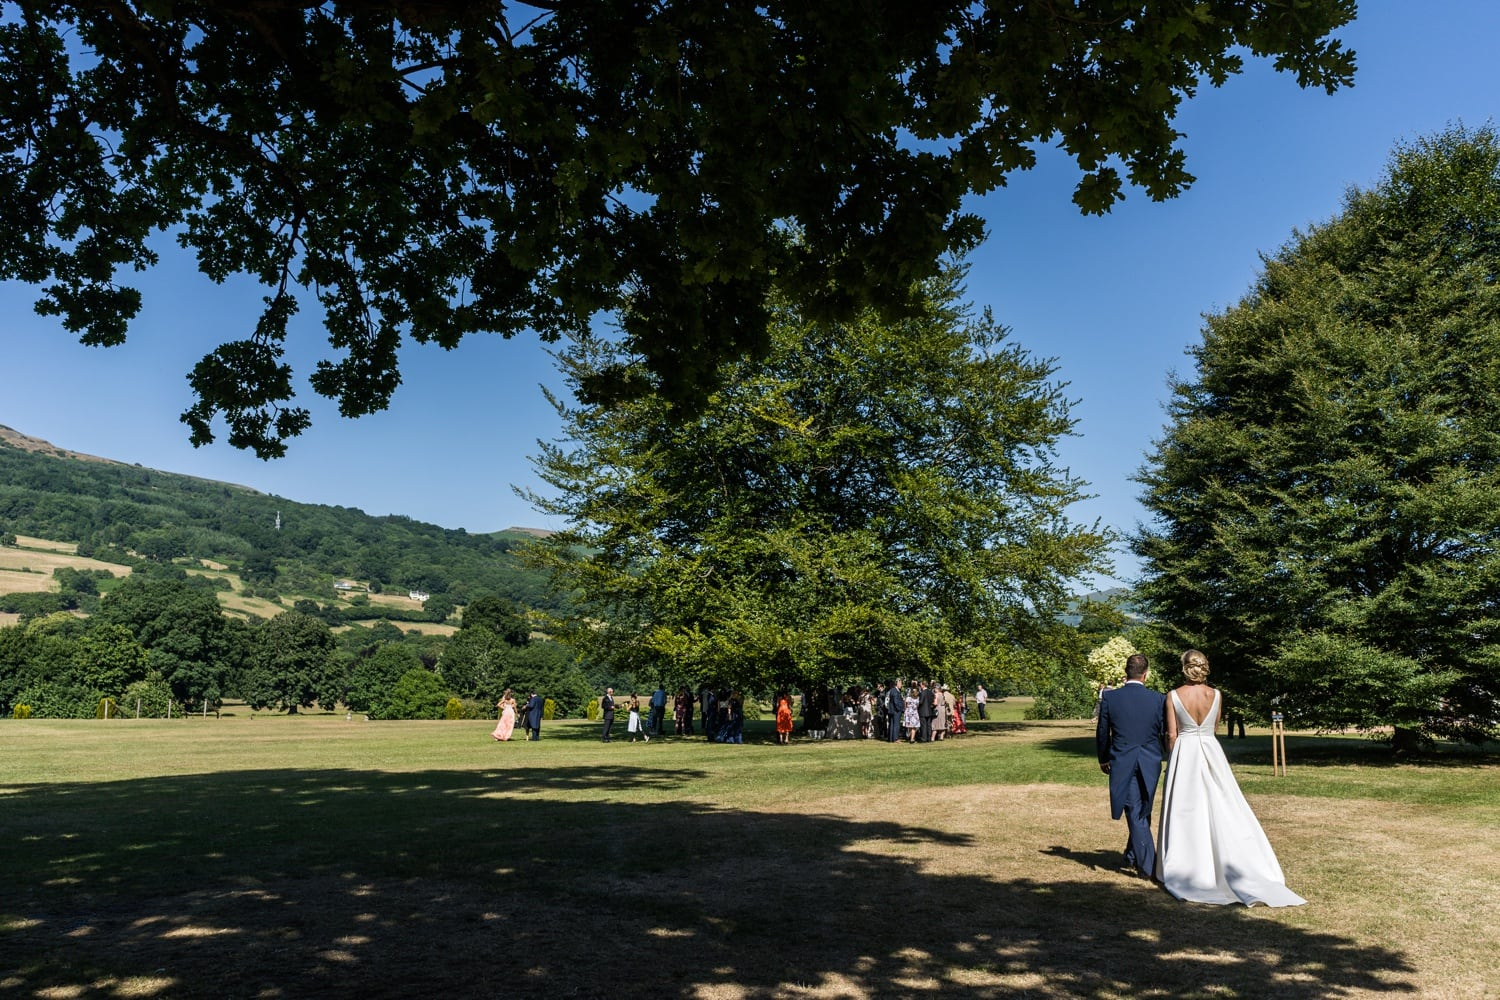 Bride and groom arrives at Glanusk Park Estate wedding